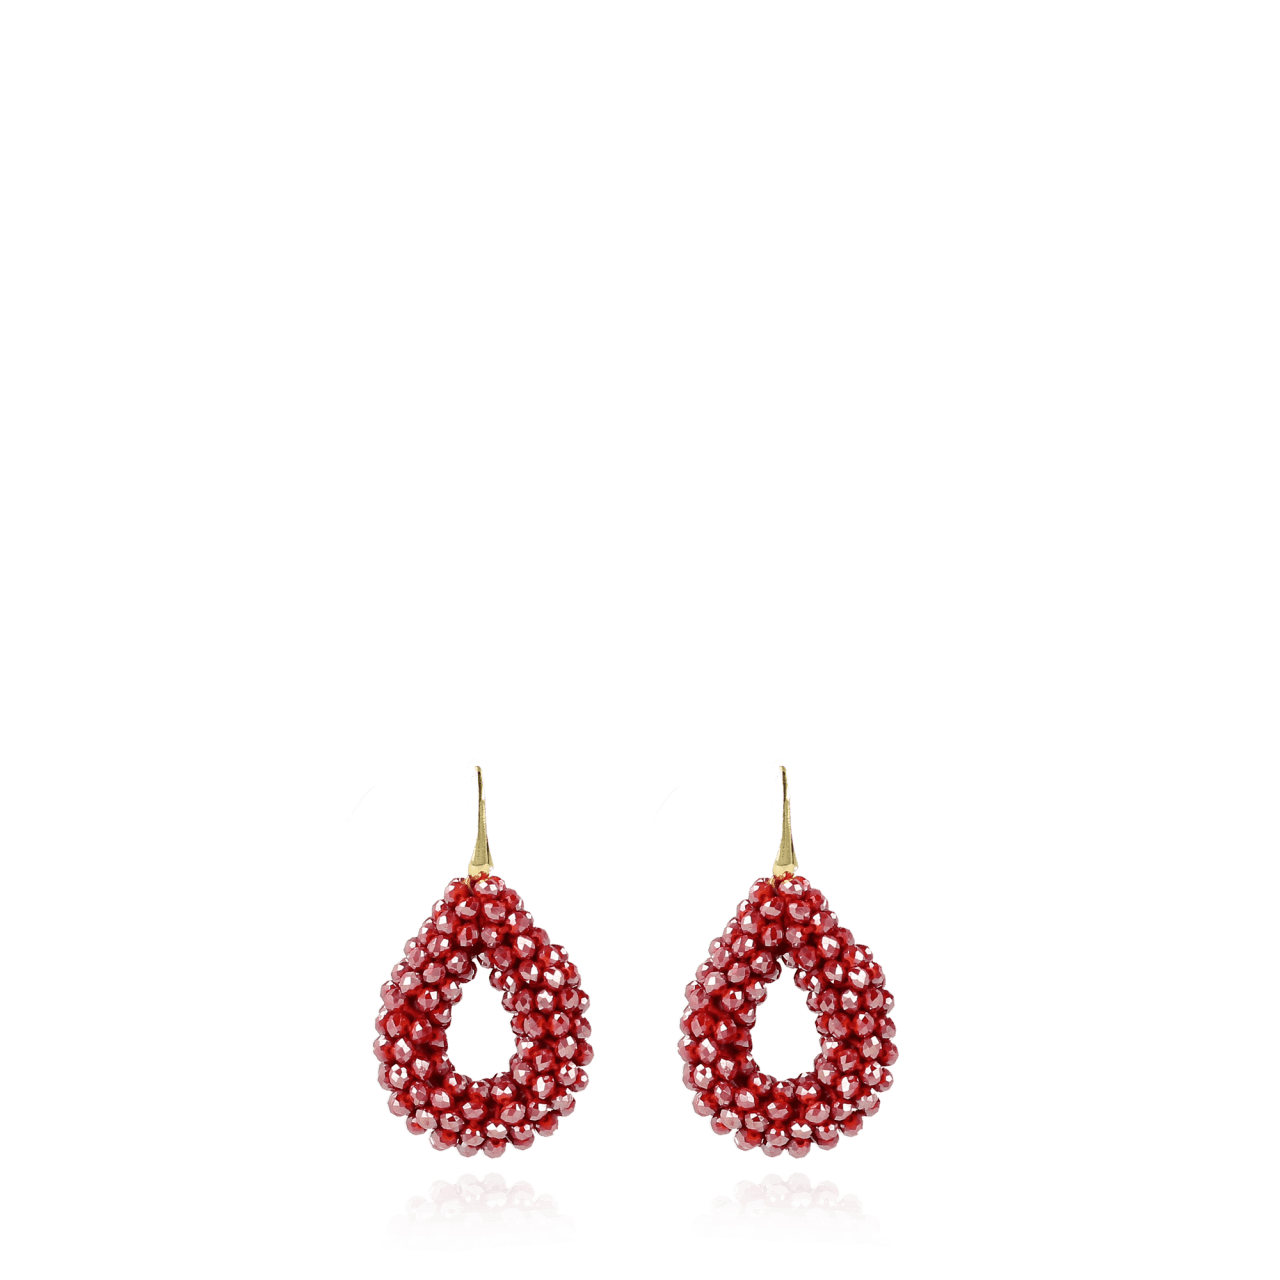 Sparkling red glassberry drop S earrings